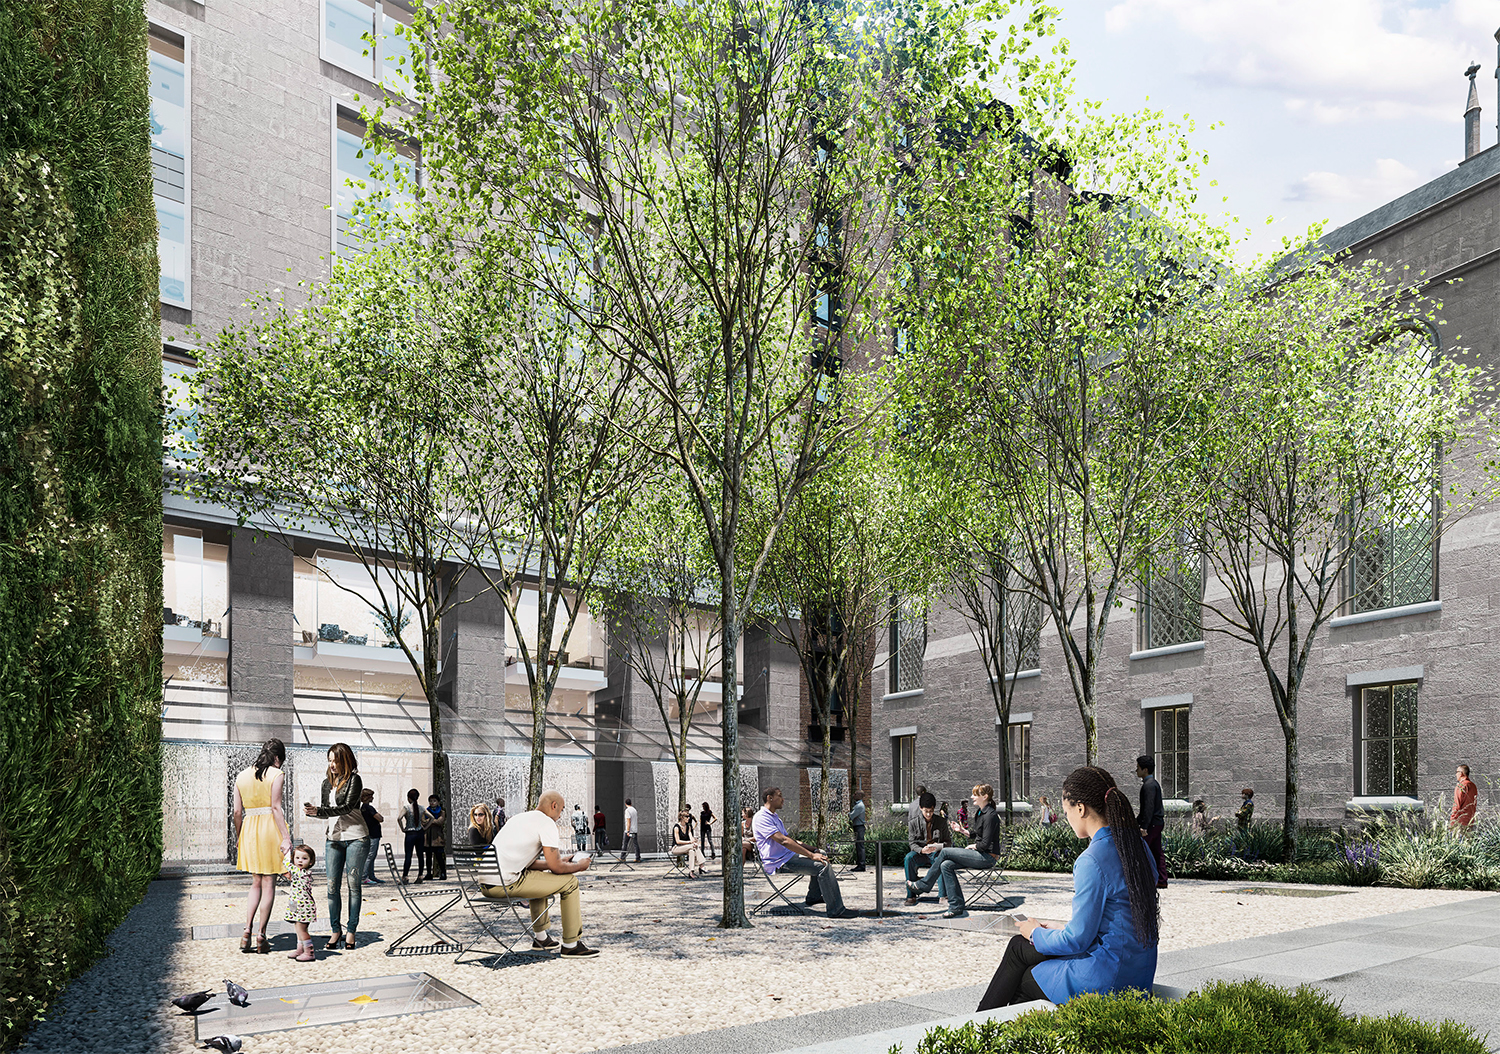 Proposed Marble Collegiate Church garden park during the day.